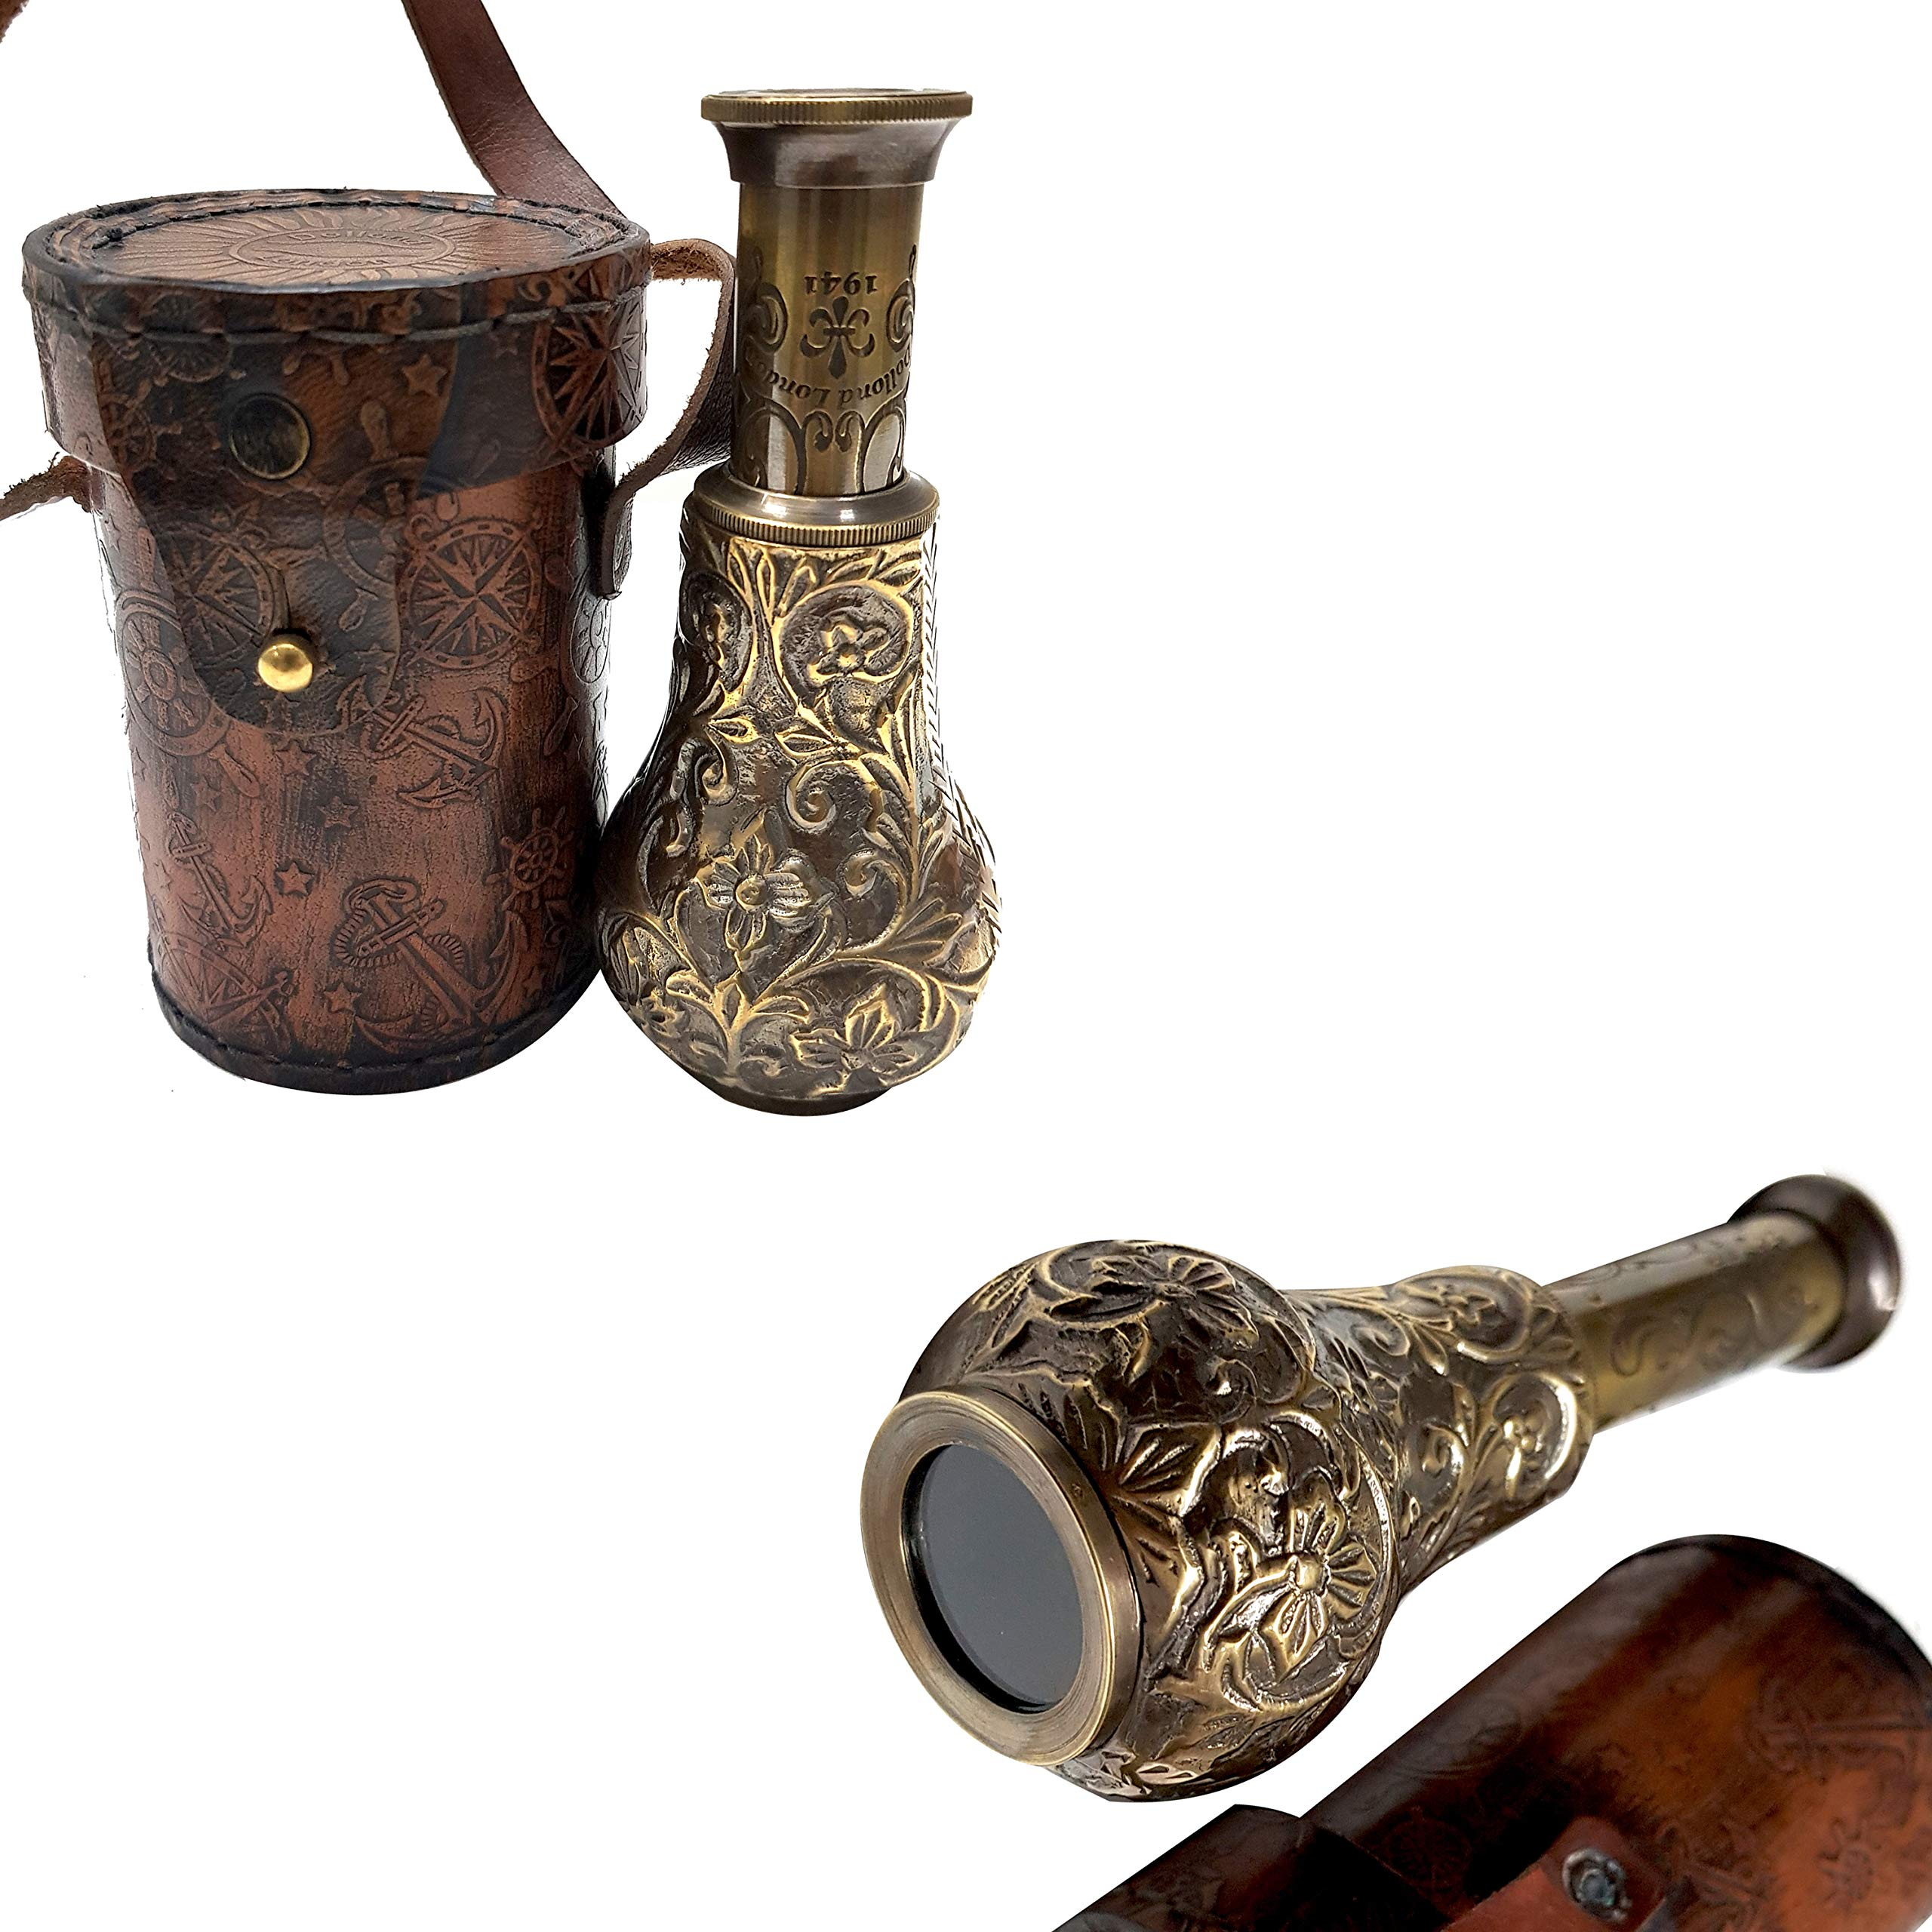 New Handmade Royal Pirates Handicraft Antique Marine Telescope with Leather Case Dollond London Marine Authentic Article Nautical Spyglass by Collectibles Buy